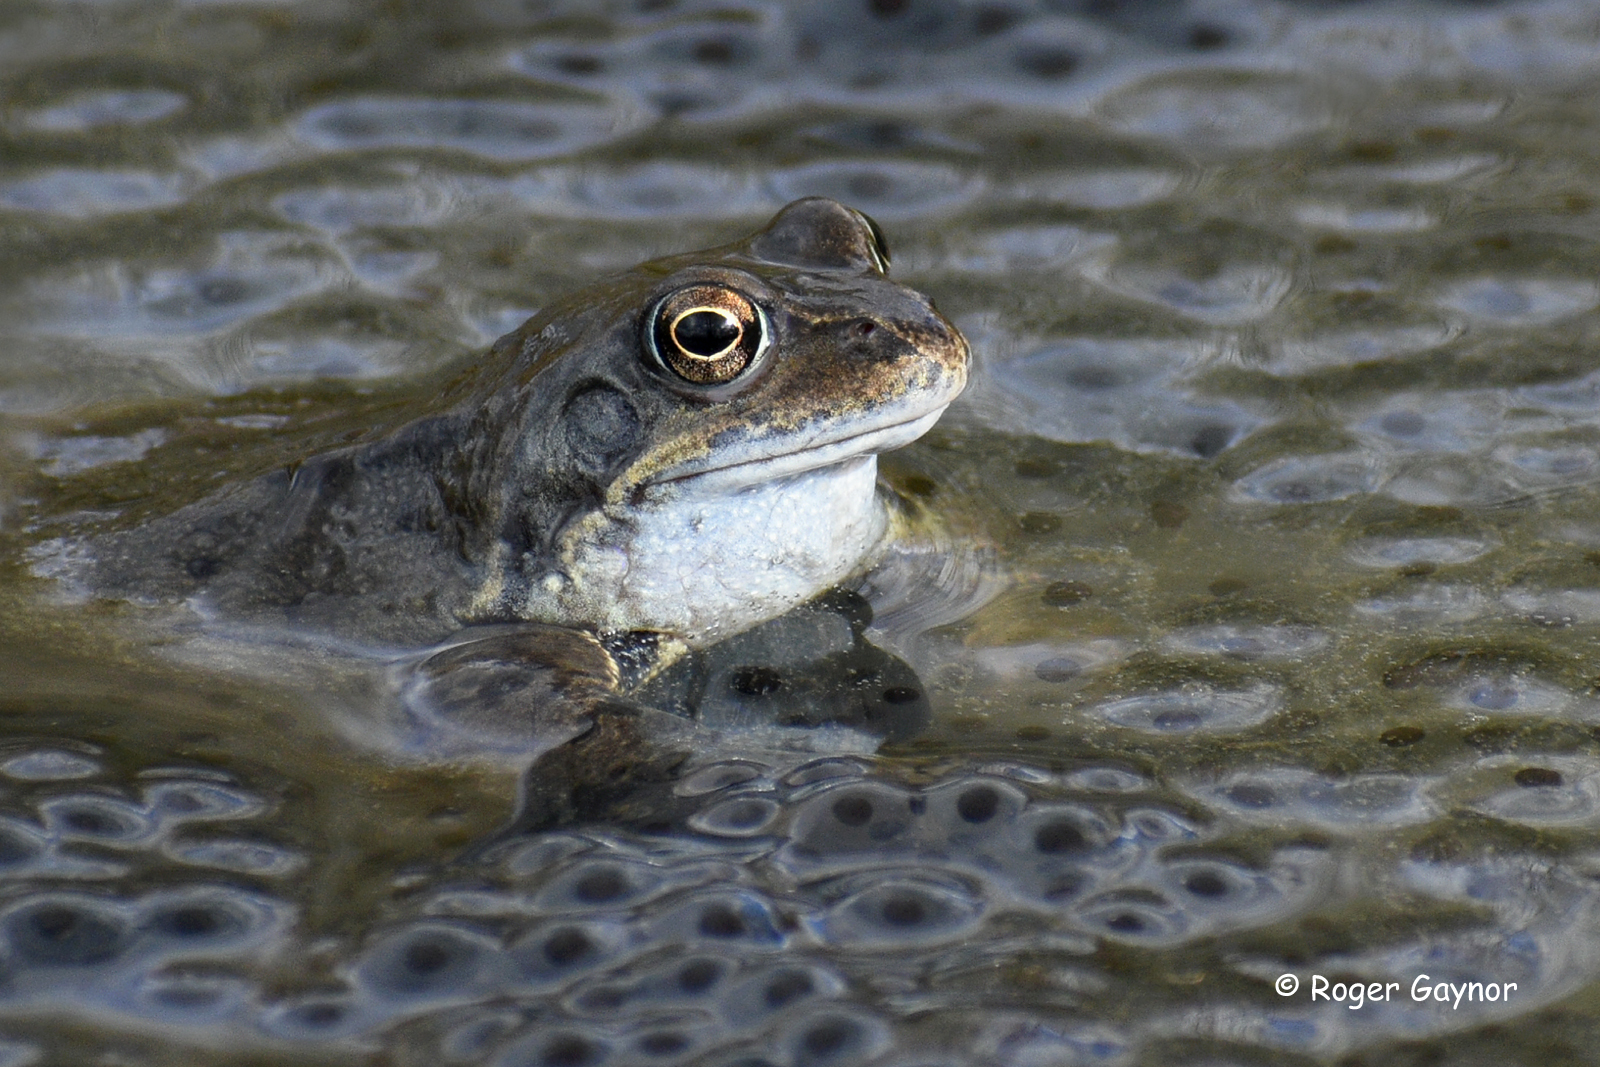 Frog and frog spawn at Wrenthorpe